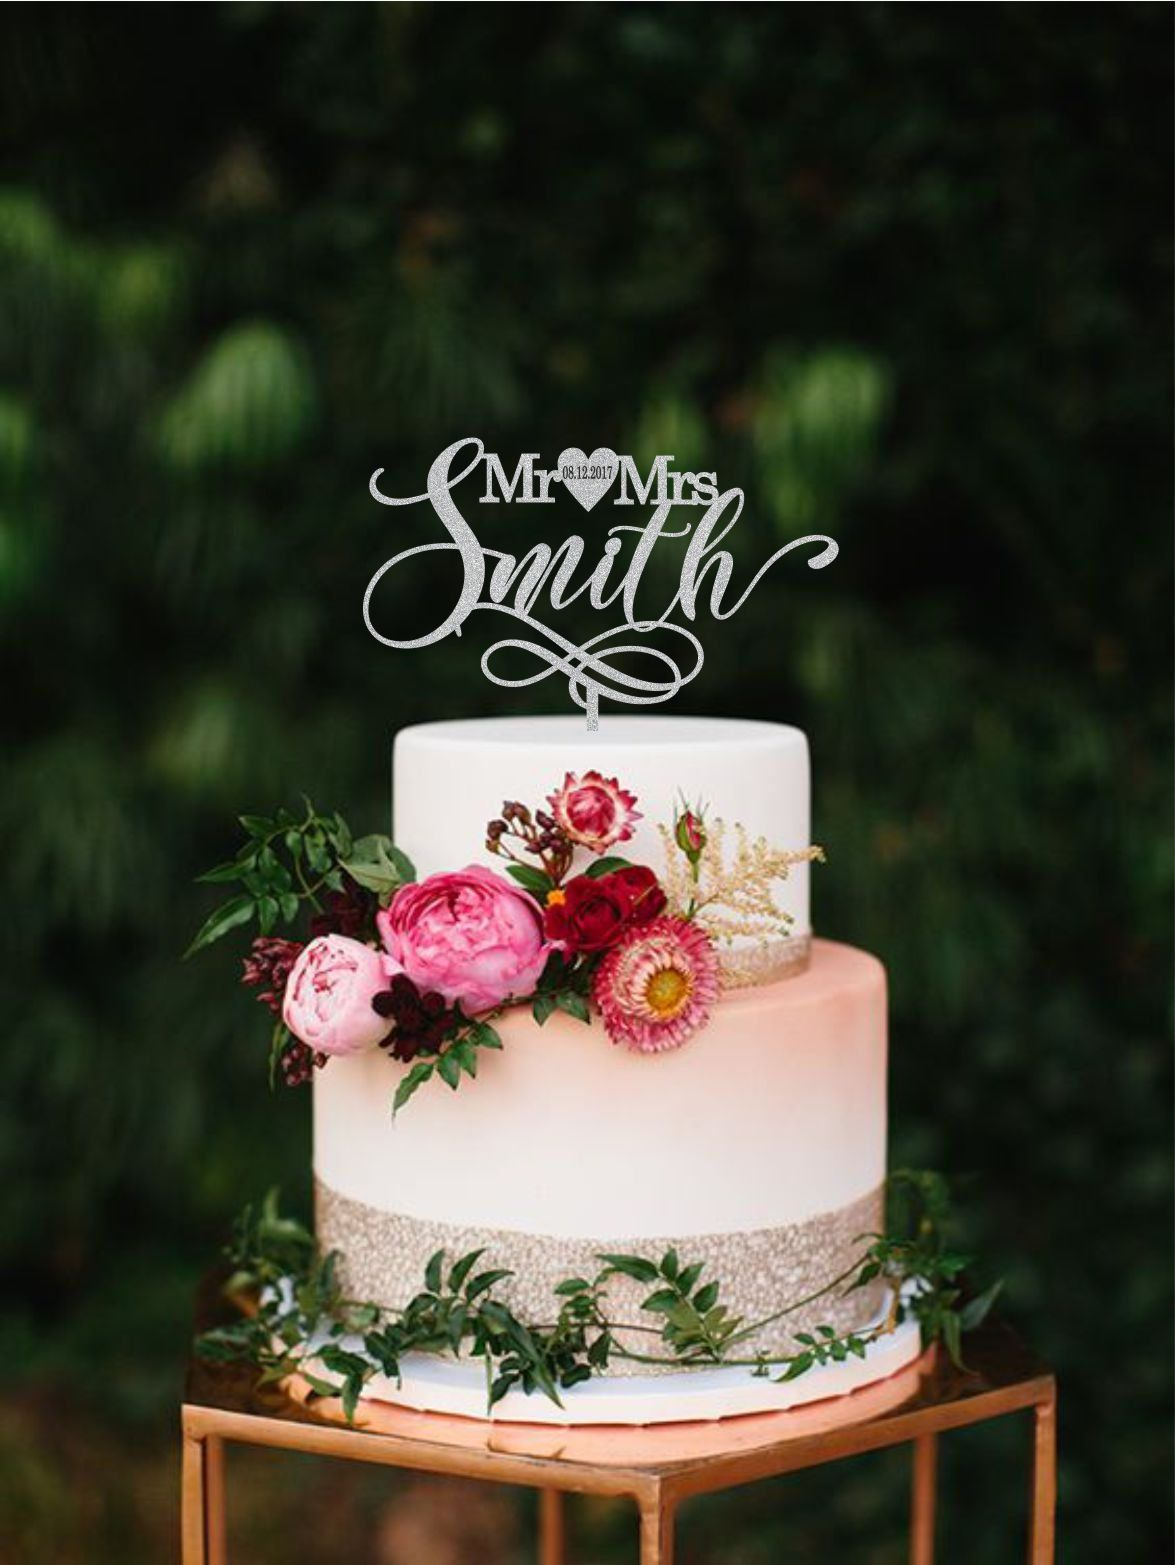 Personalized Last Name Wedding Cake Topper Heart Wedding Date Etsy Geometric Cake Topper Geometric Wedding Cakes Cool Wedding Cakes